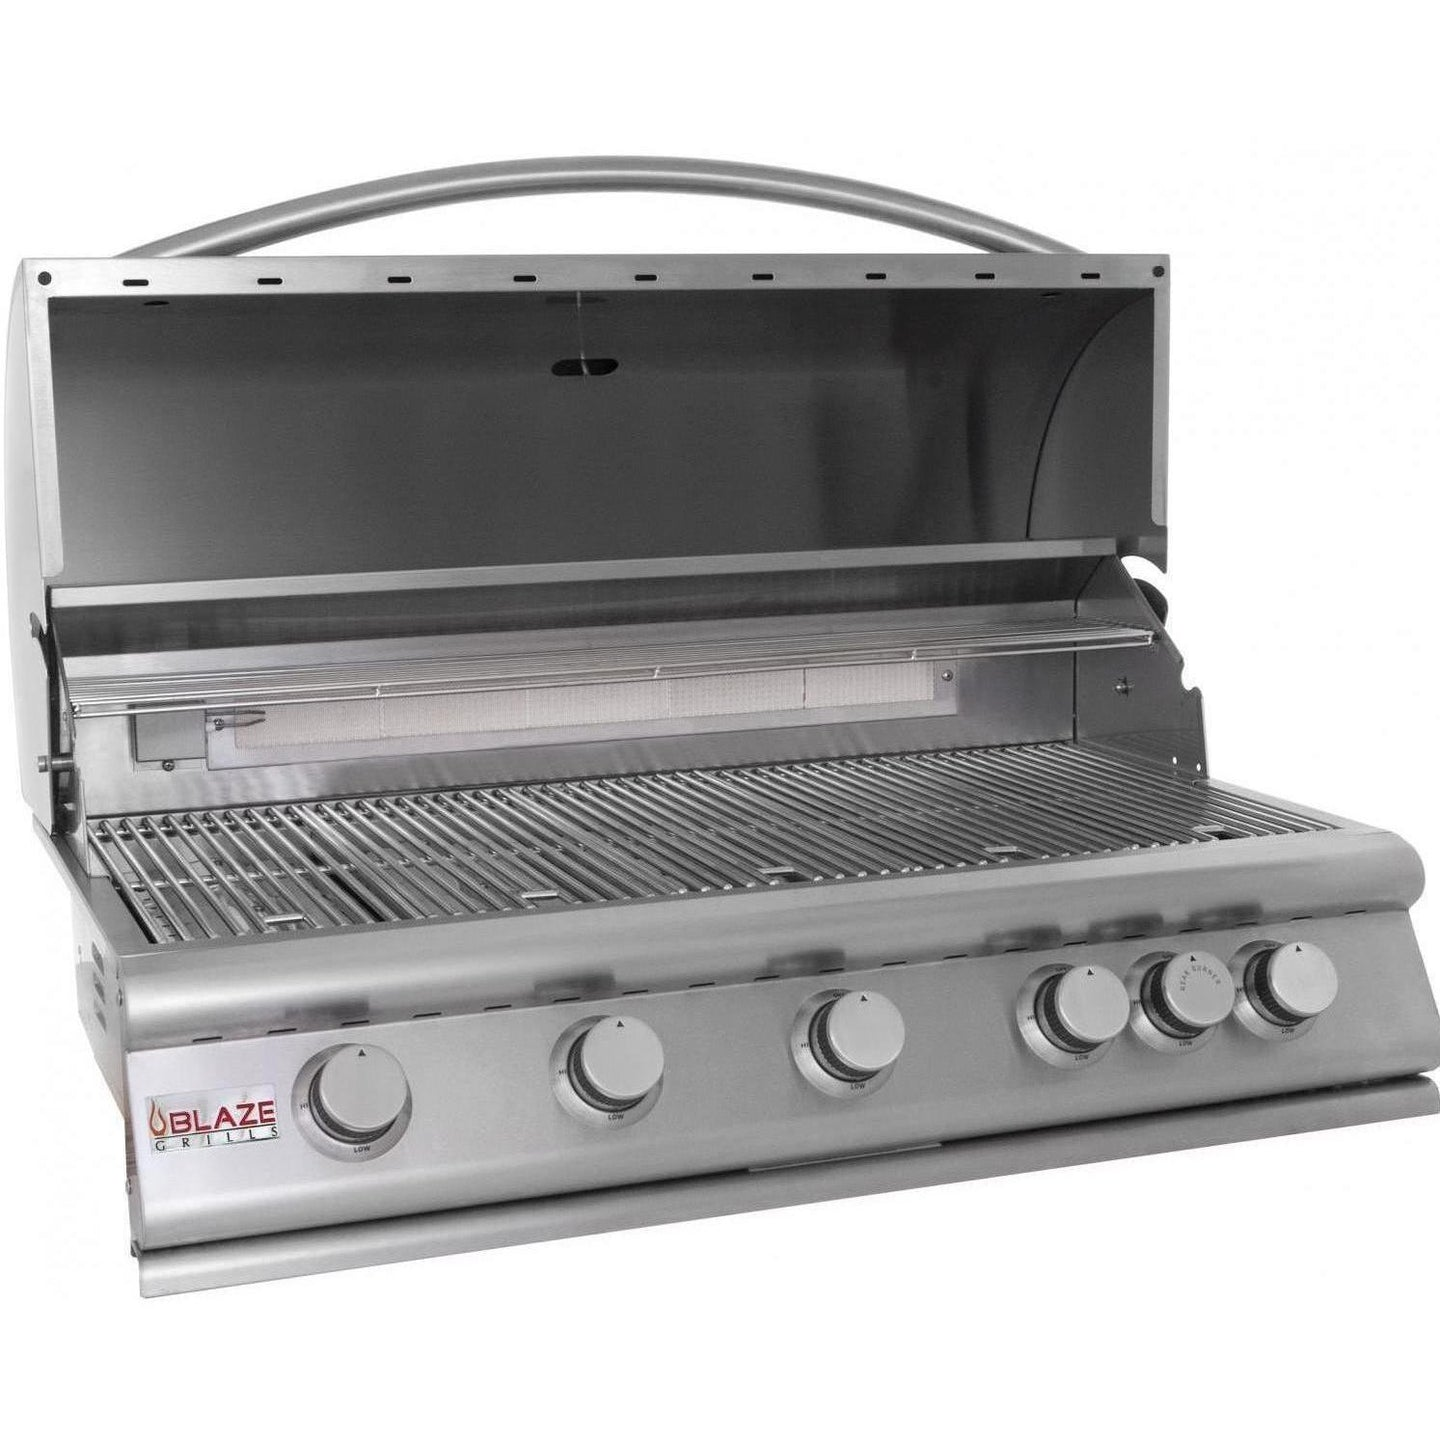 Blaze 40-Inch 5-Burner Built-In Gas Grill With Rear Infrared Burner - BLZ-5LTE2-LP/NG